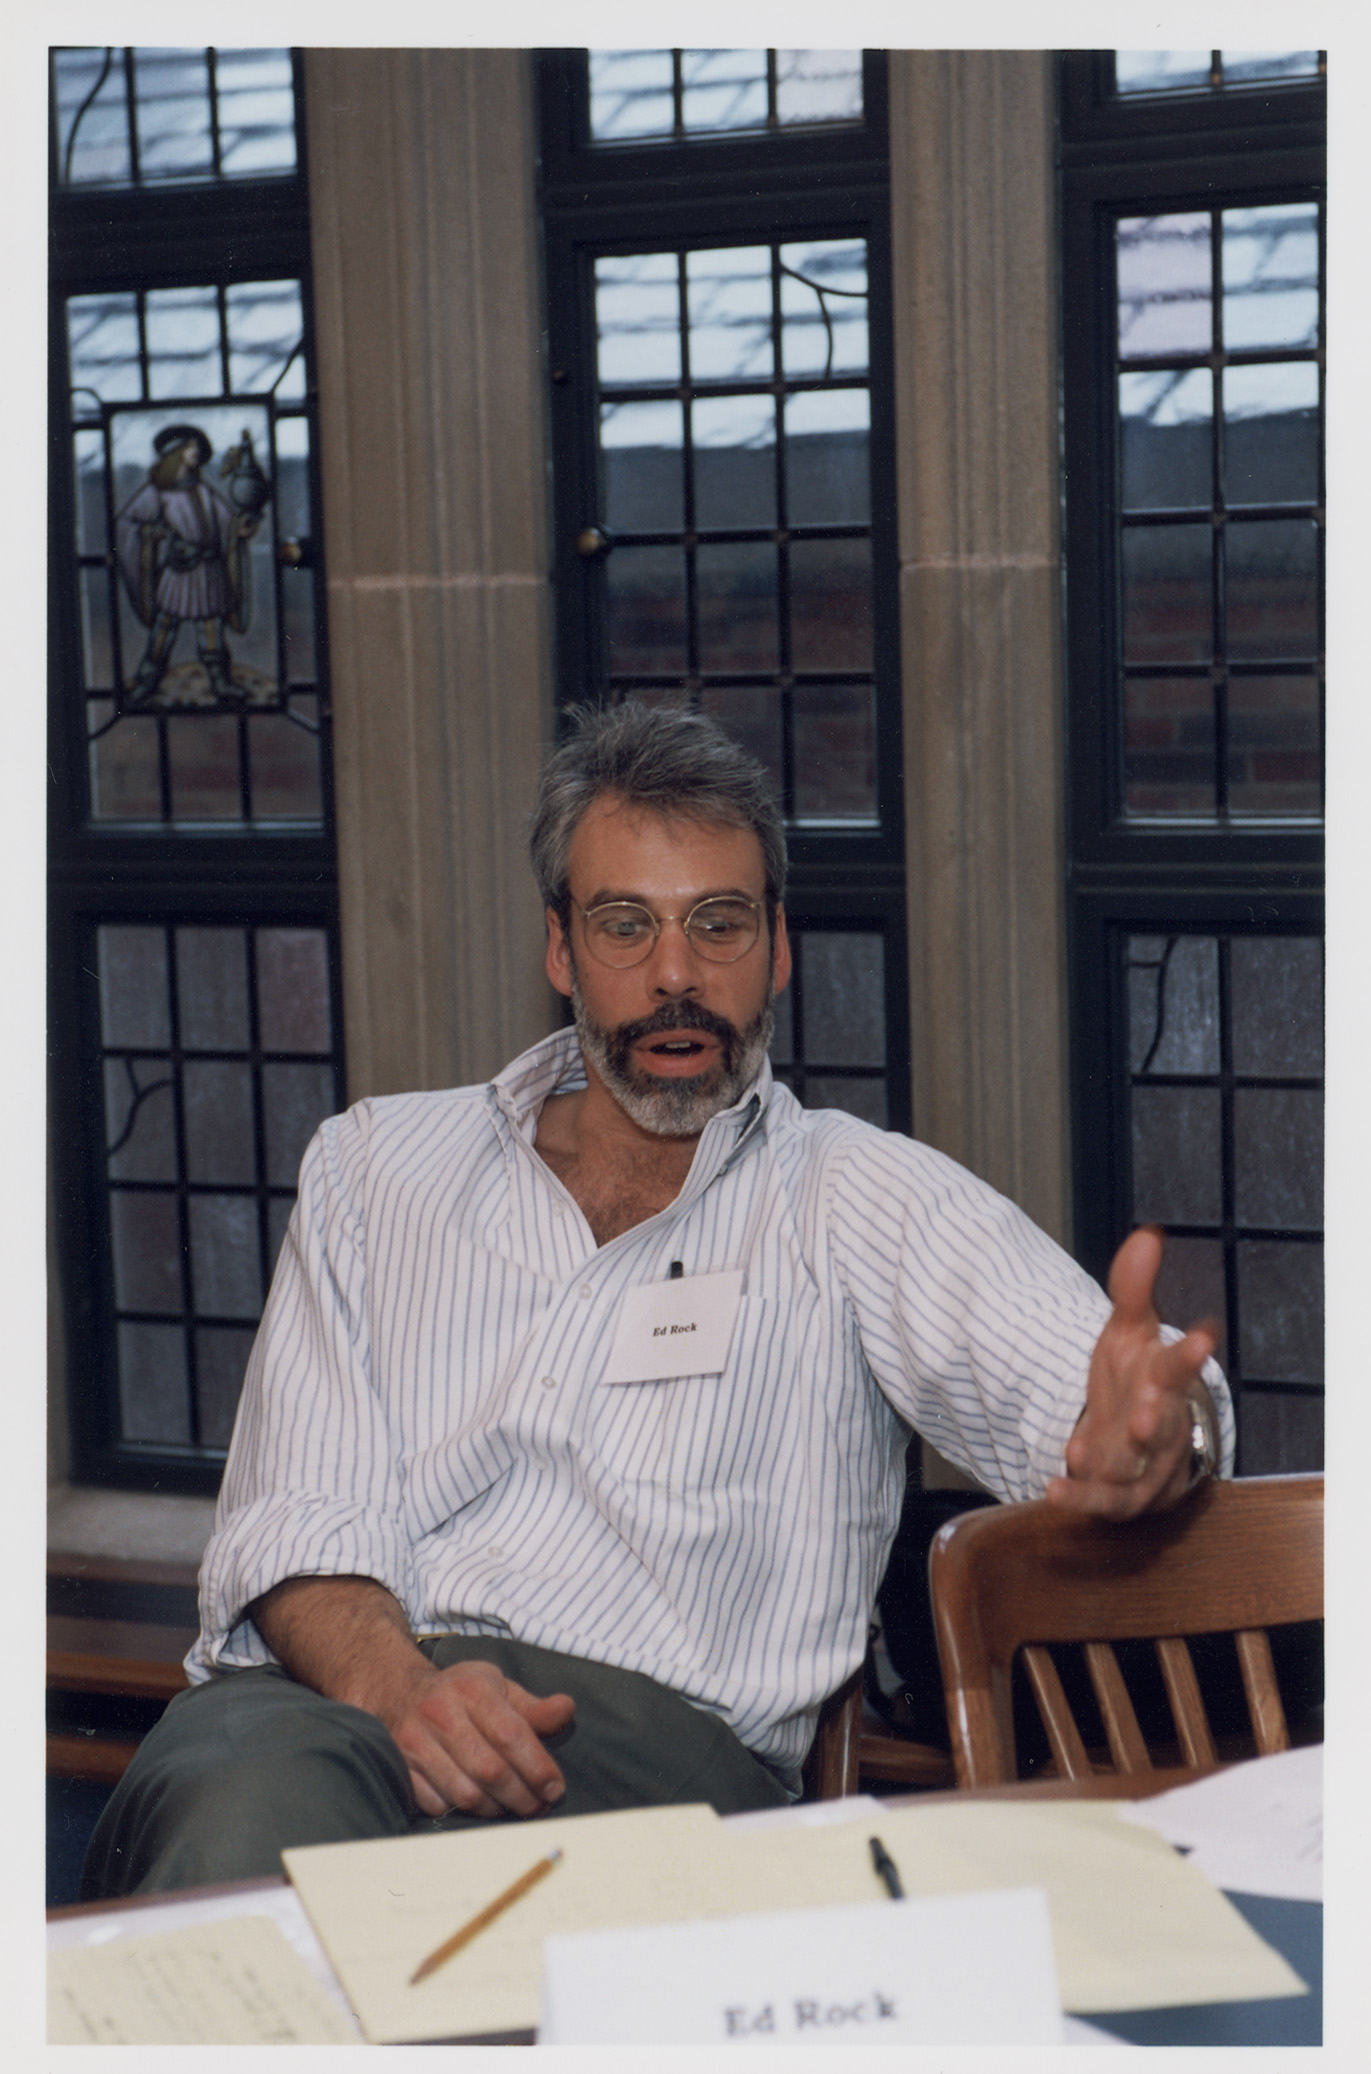 Penn Law Prof. Edward Rock